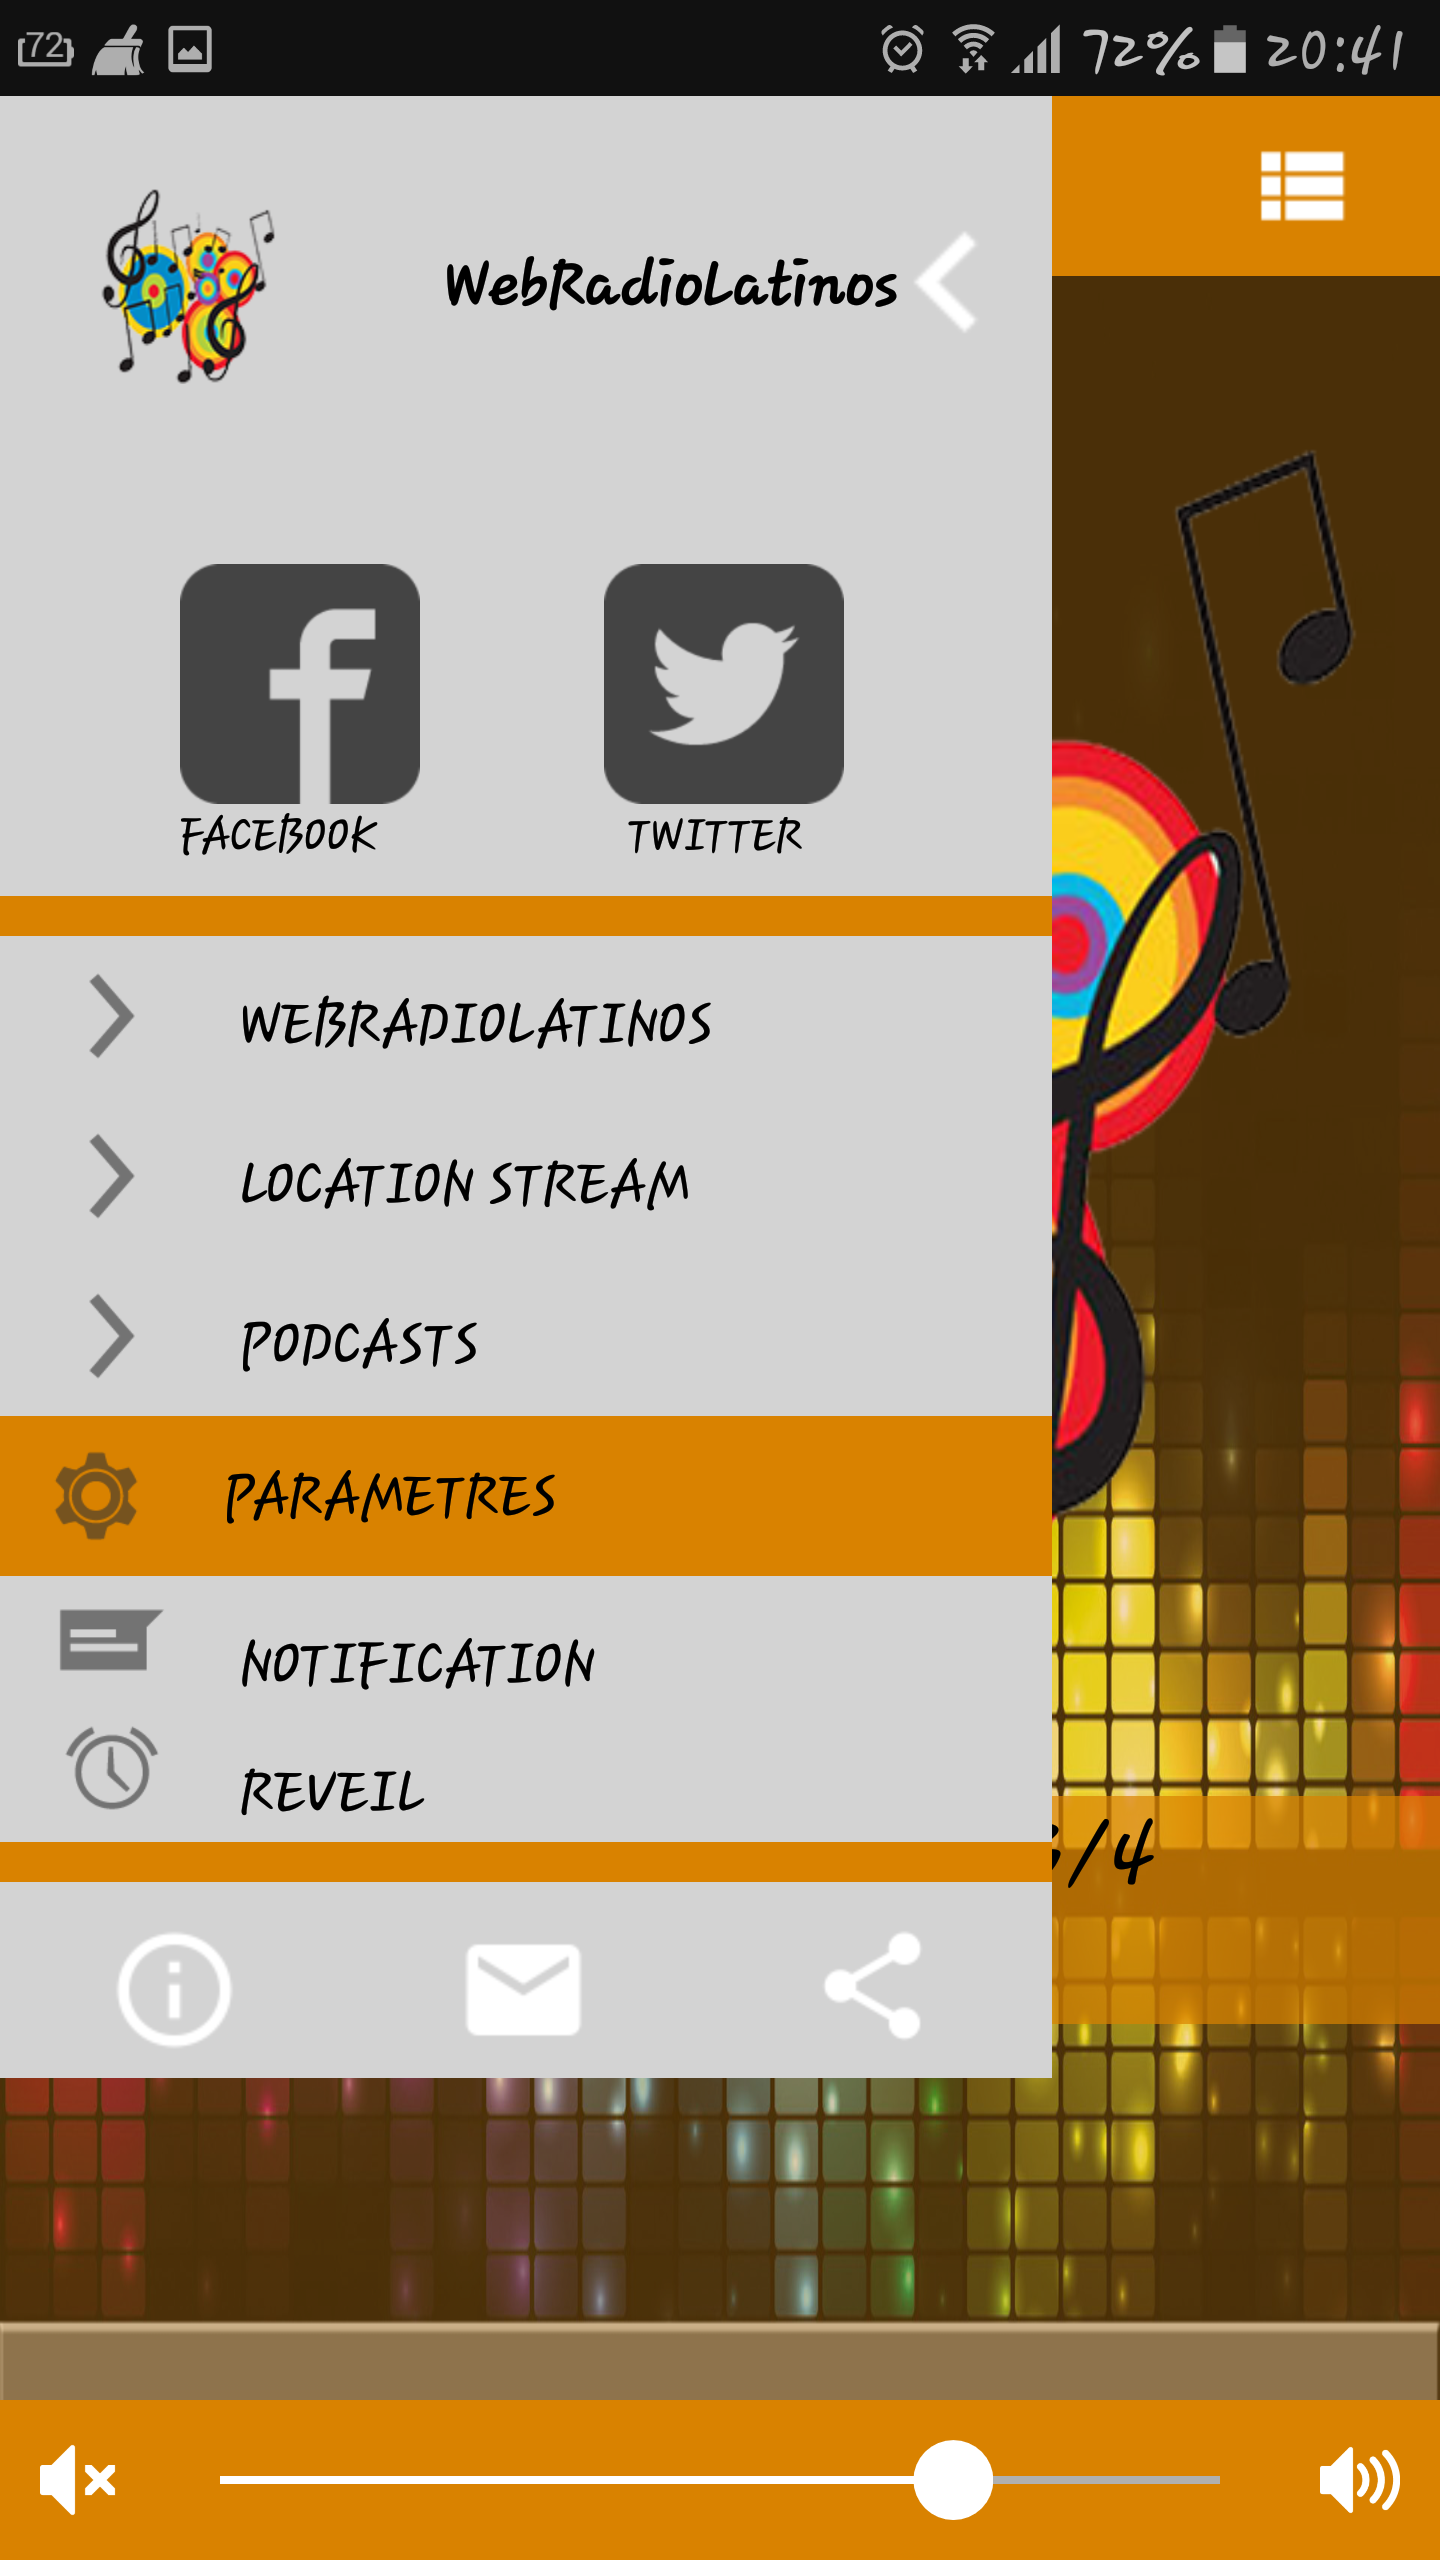 Application webradio Android Iphone menu liens Facebook Twitter Siteweb